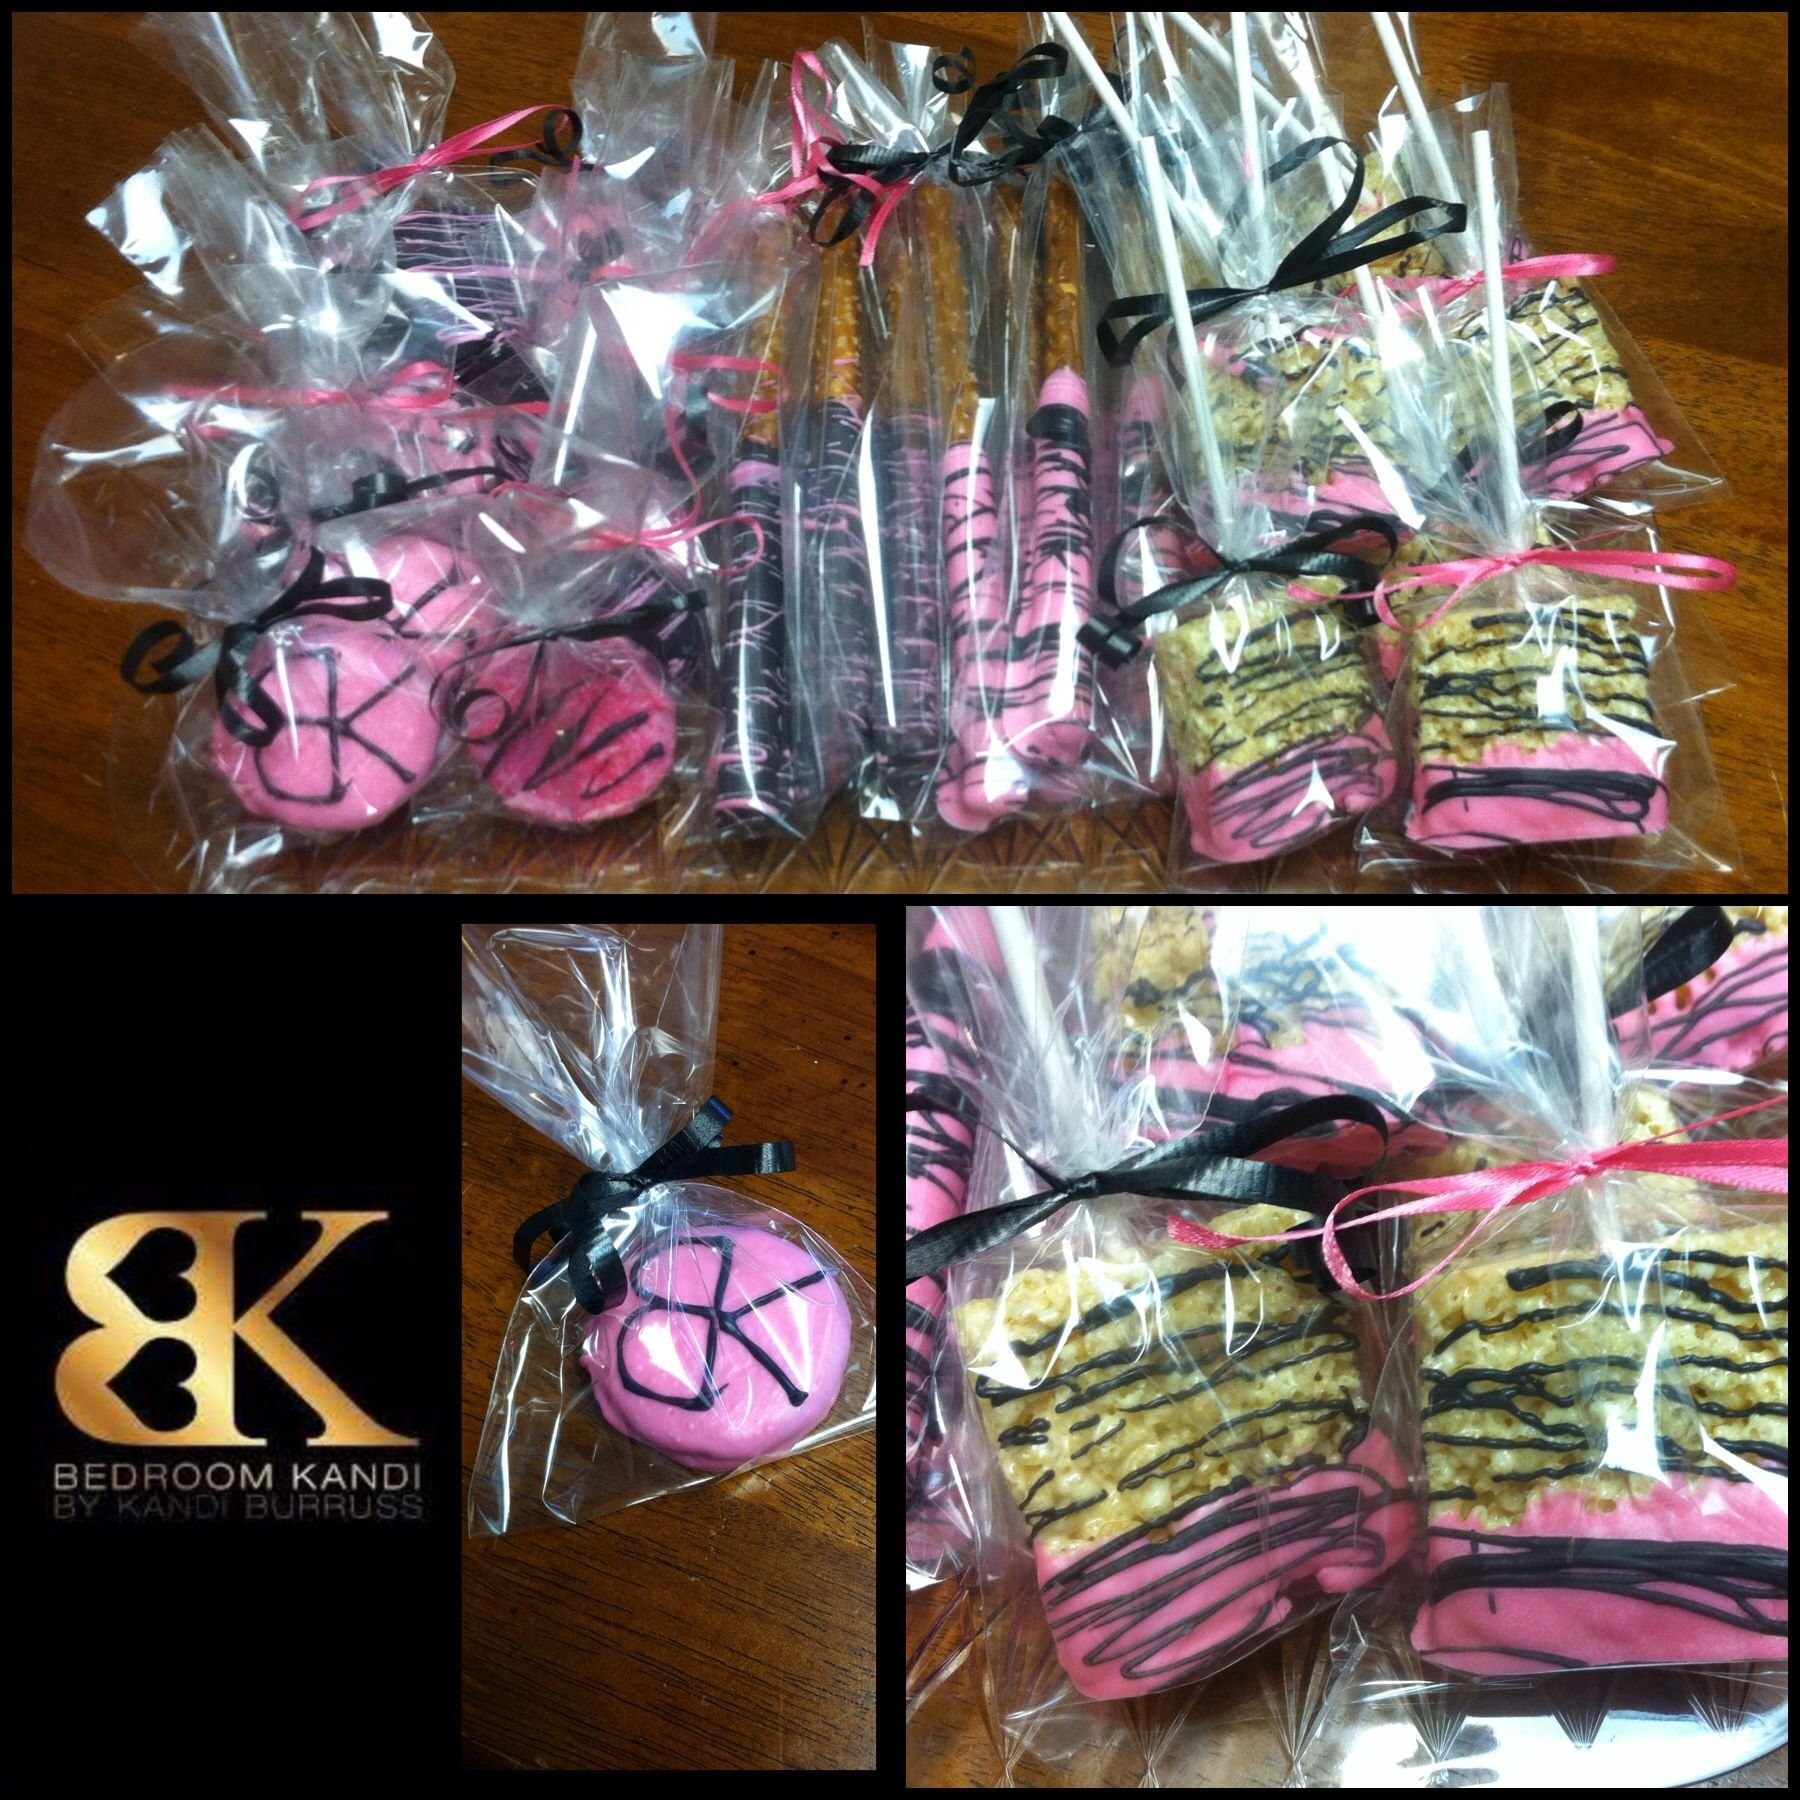 Best Chocolate Covered Pretzels Rice Crispy Treats And Oreos Pink And Black Bedroom Kandi Party With Pictures